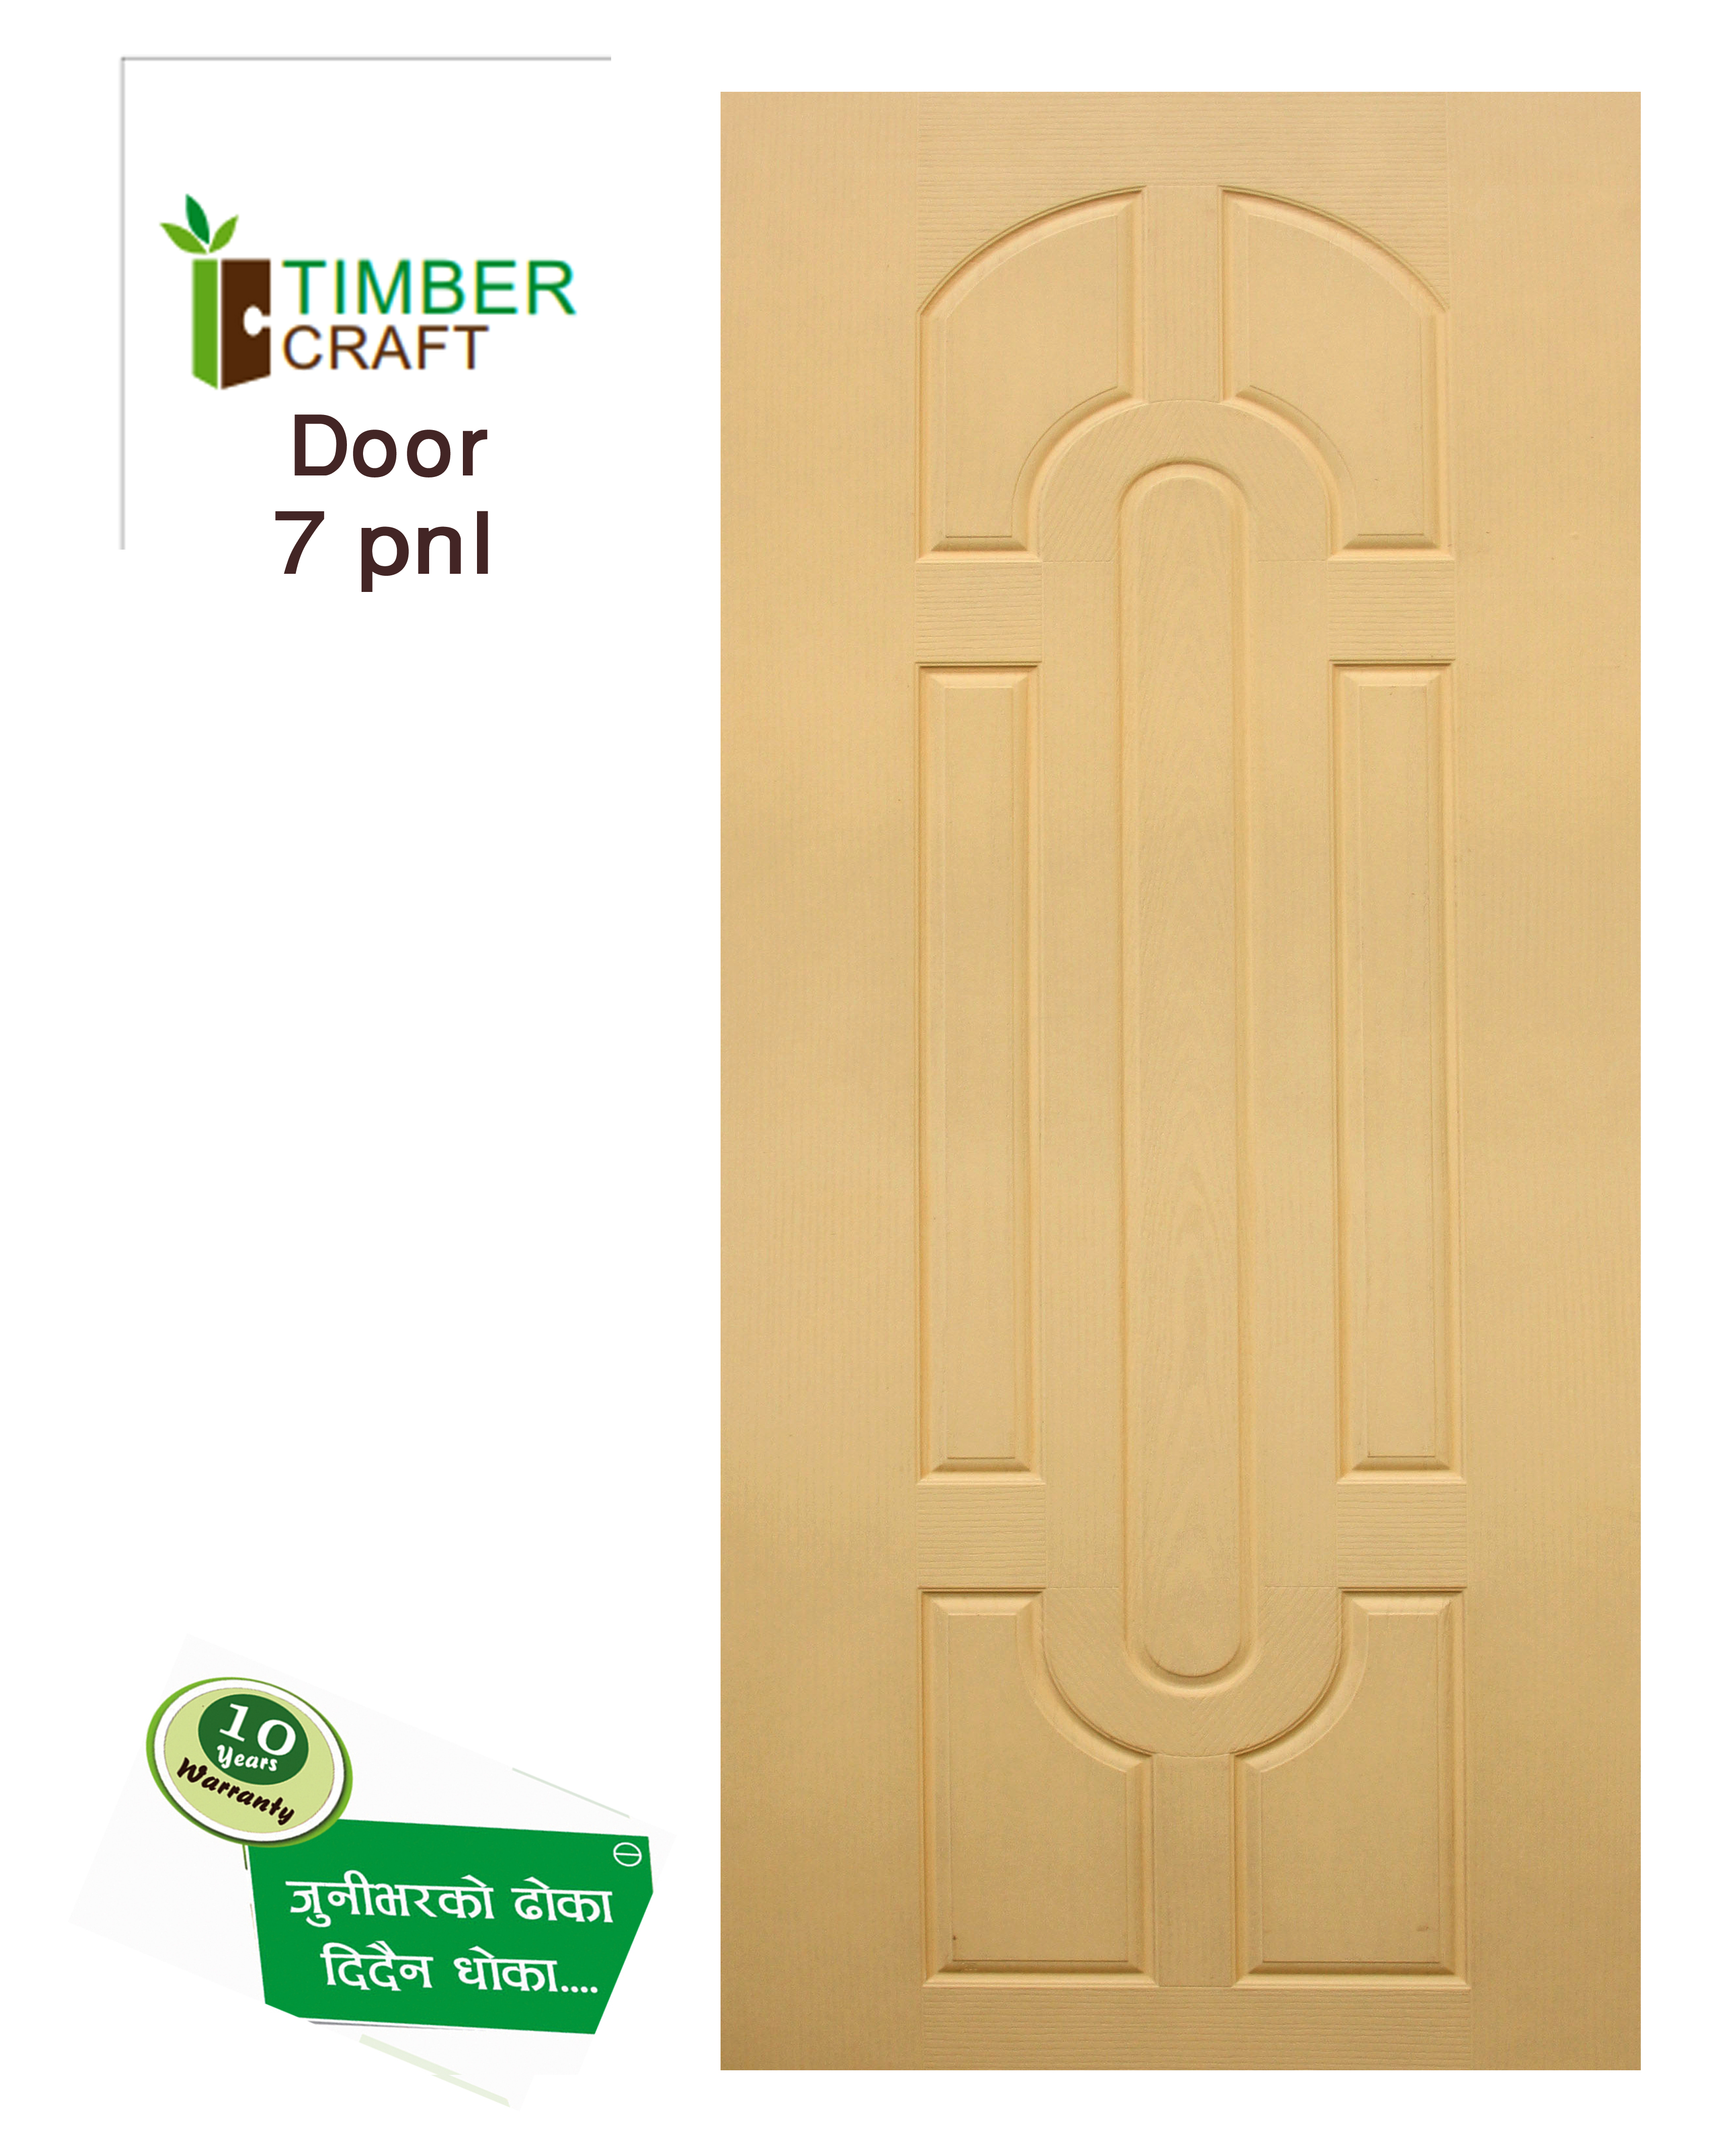 Molded Masonite Skin door design  with 7 panel -readymade door all over nation  made in Nepal .